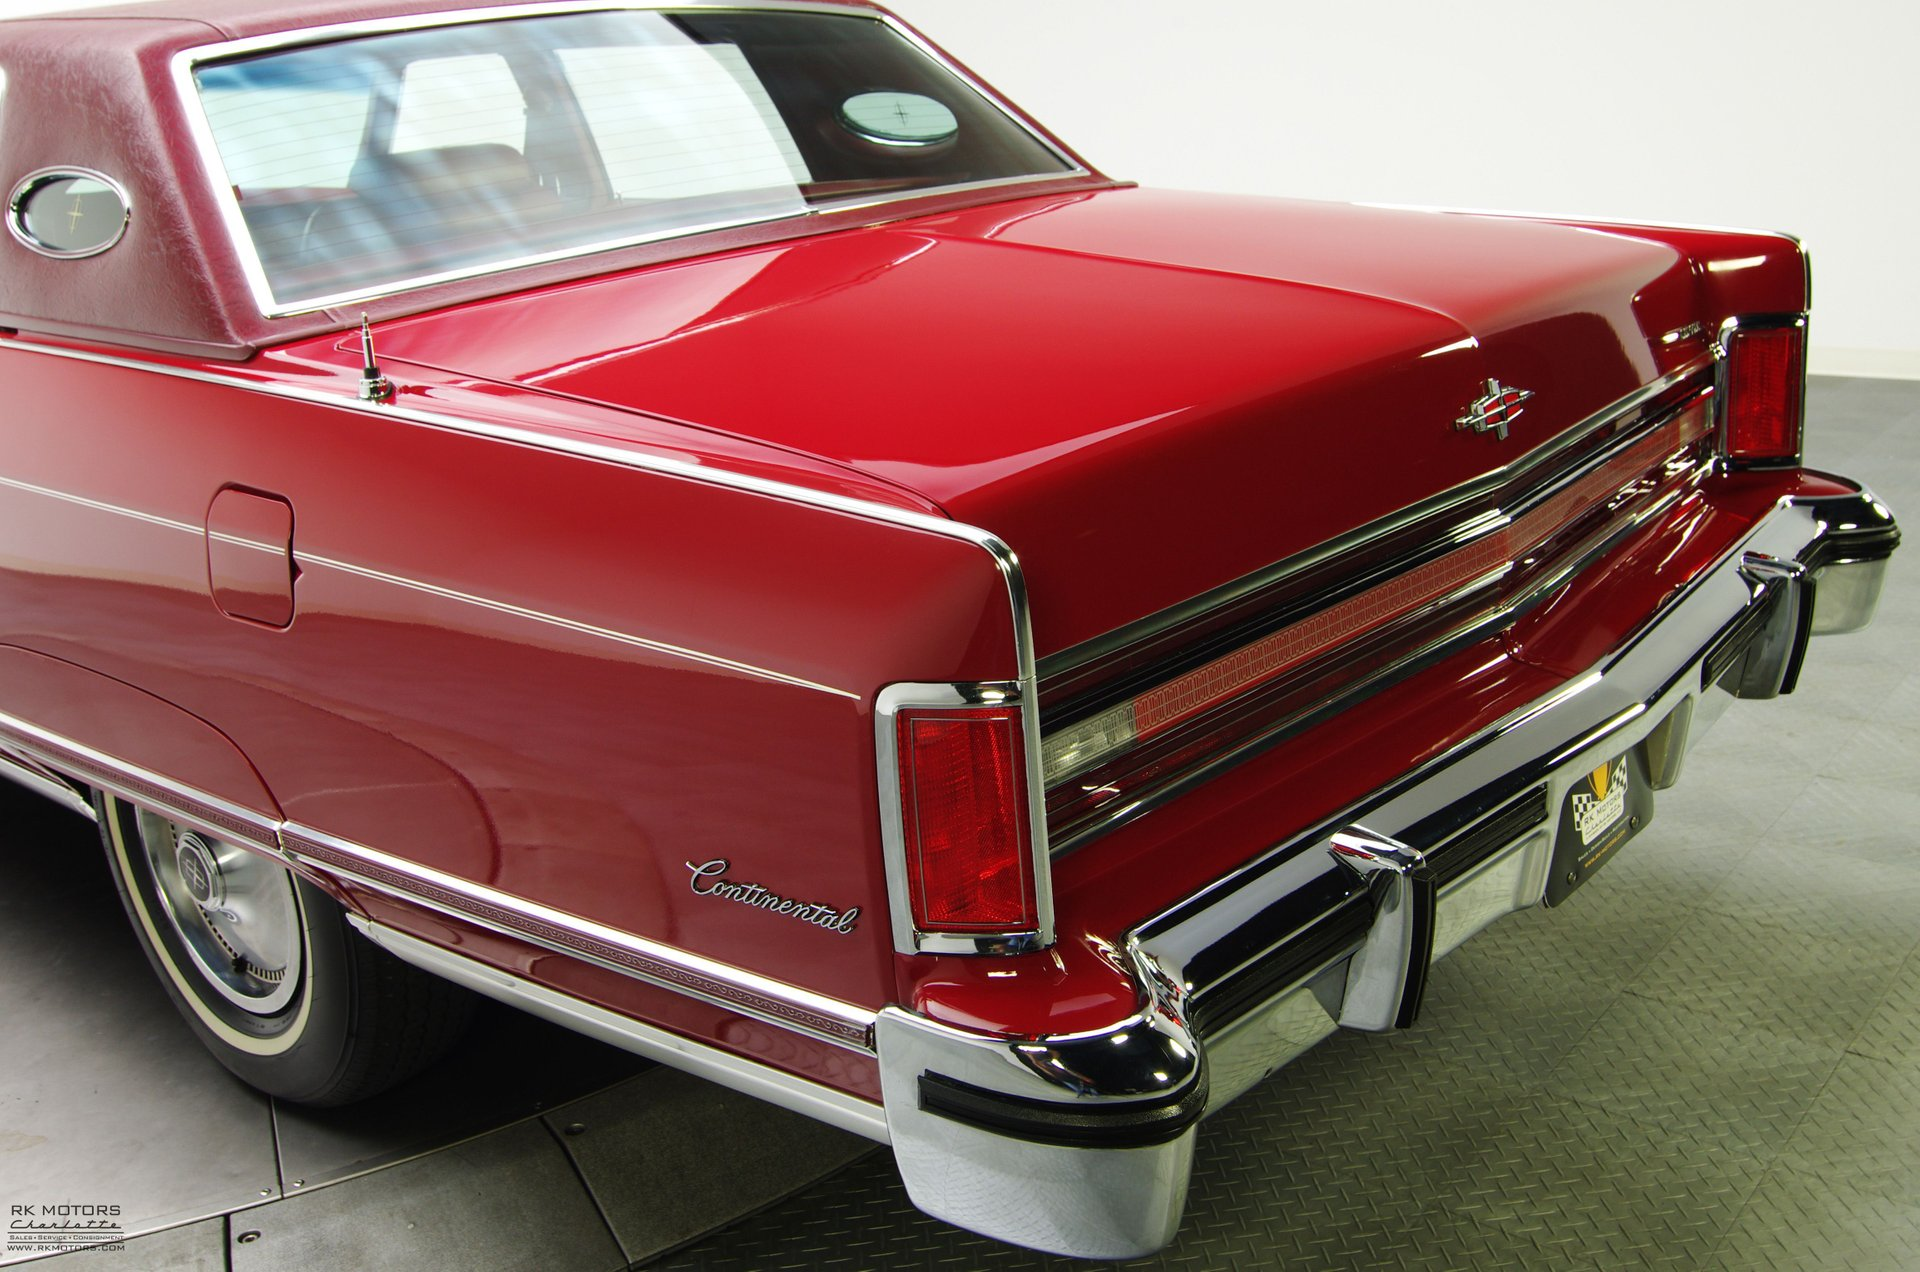 132618 1976 Lincoln Continental Rk Motors Classic Cars For Sale